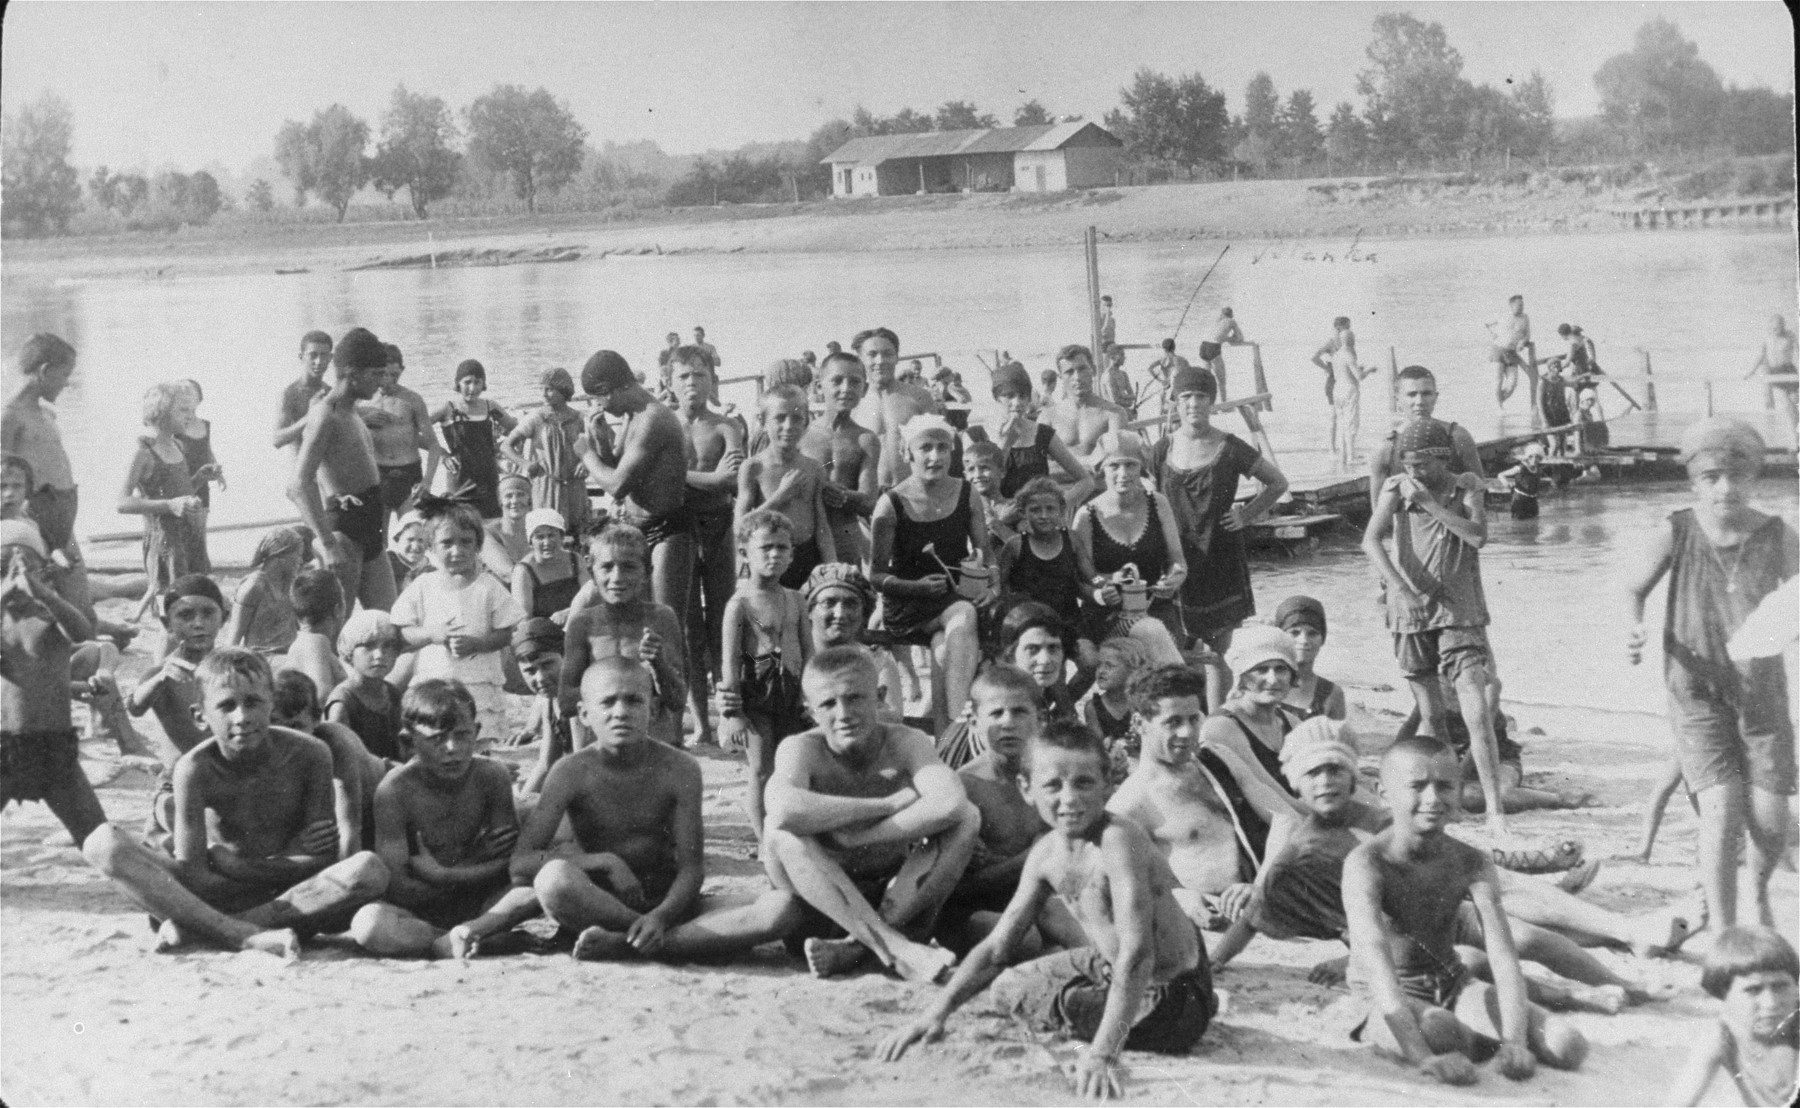 A group of young people pose on the beach.  Among those pictured is Blanka Klein (later Kupfermann). She is the girl holding a watering can, farthest to the right.